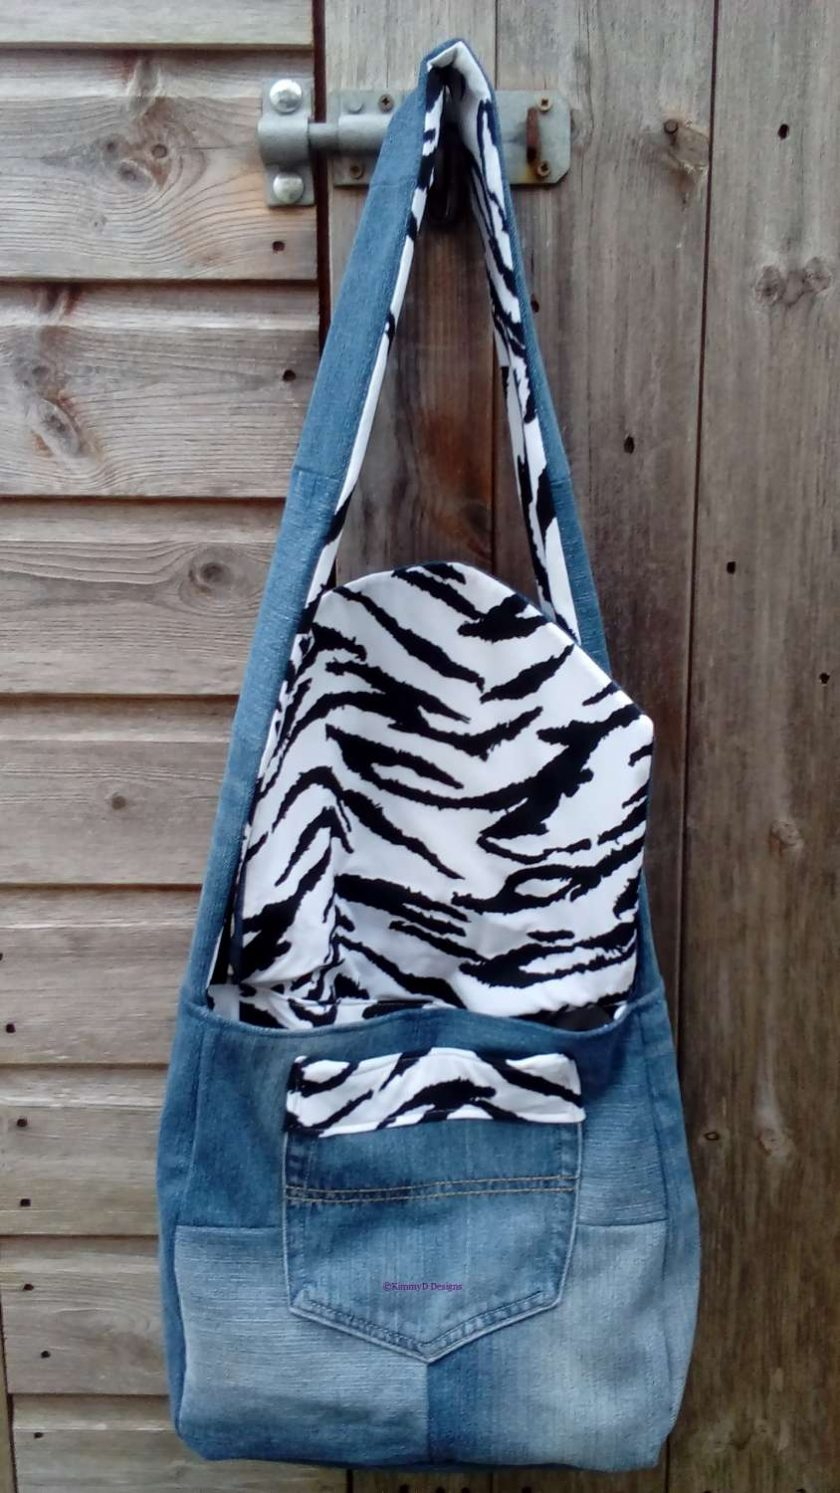 Queen Fully Lined Handbag Zebra Fabric & Button Crown FREE UK POSTAGE 6